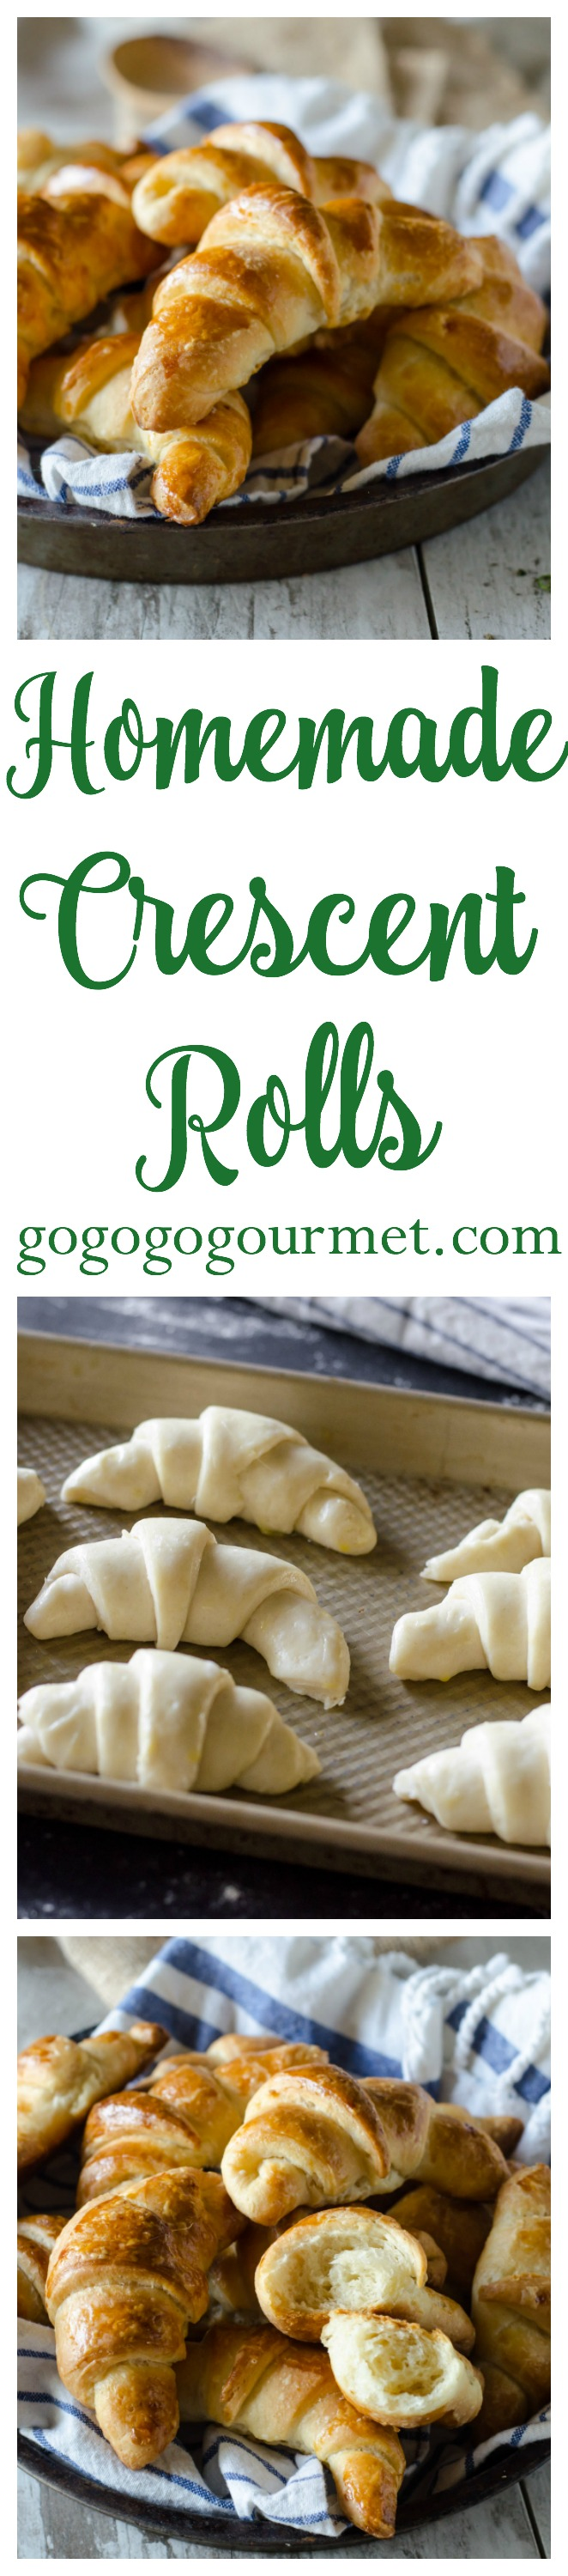 These homemade crescent rolls are easier than you think to make- most of the work is chilling time! You may never buy those pop-cans again! Homemade Crescent Rolls | Go Go Go Gourmet @Go Go Go Gourmet